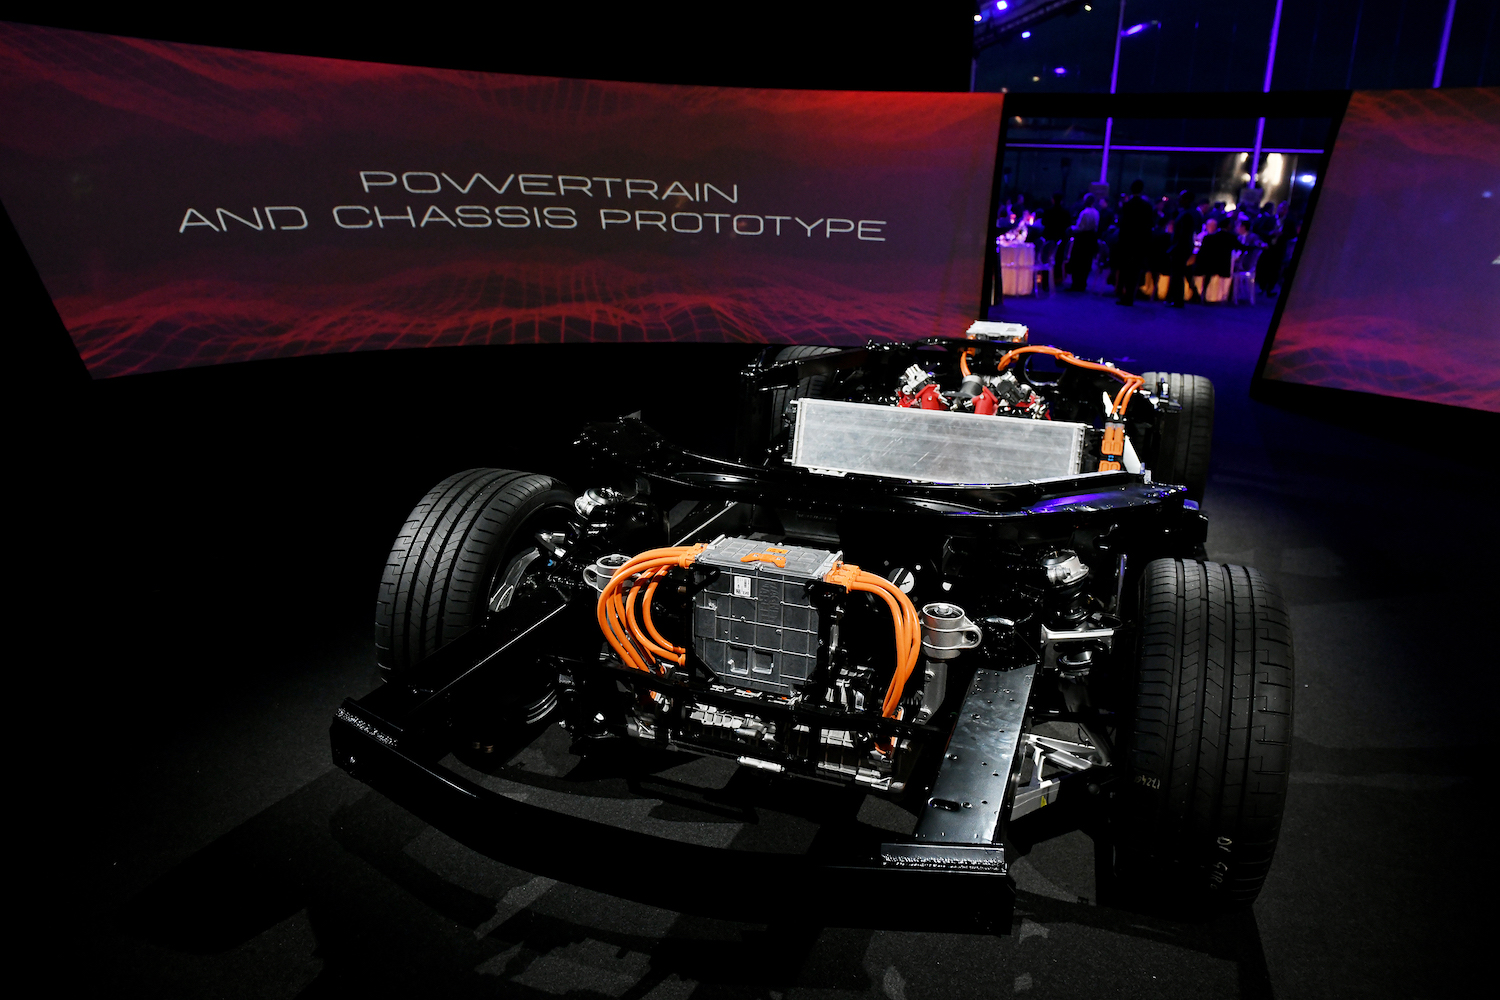 electric powertrain and chassis prototype